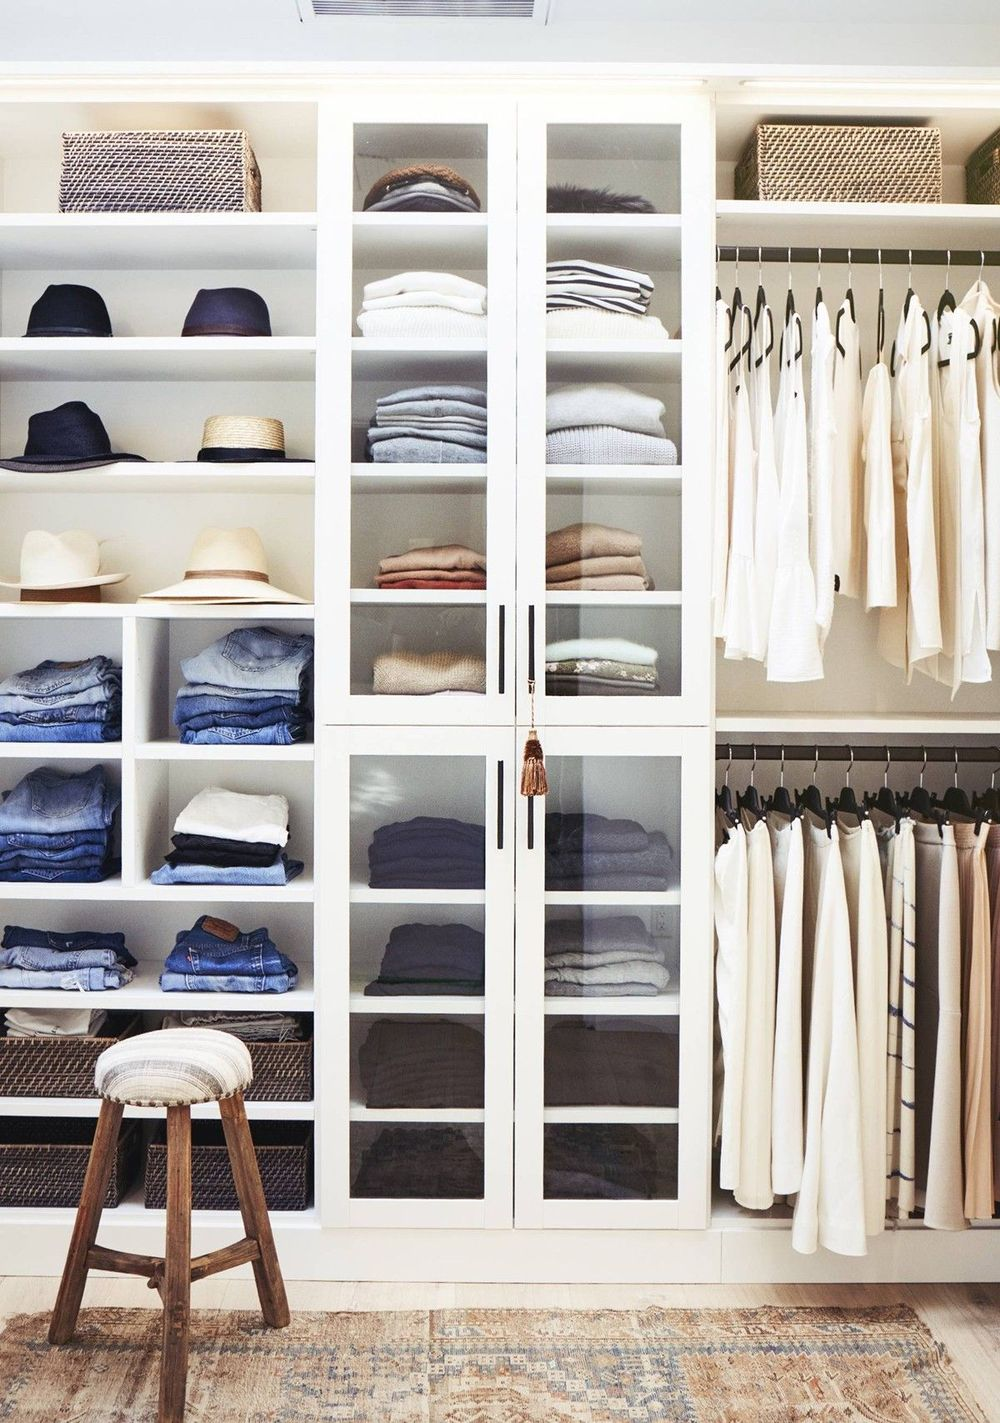 Organized bedroom Closet with a mix of shelves and Rods for Hanging via Studio Mcgee and Justin Coit